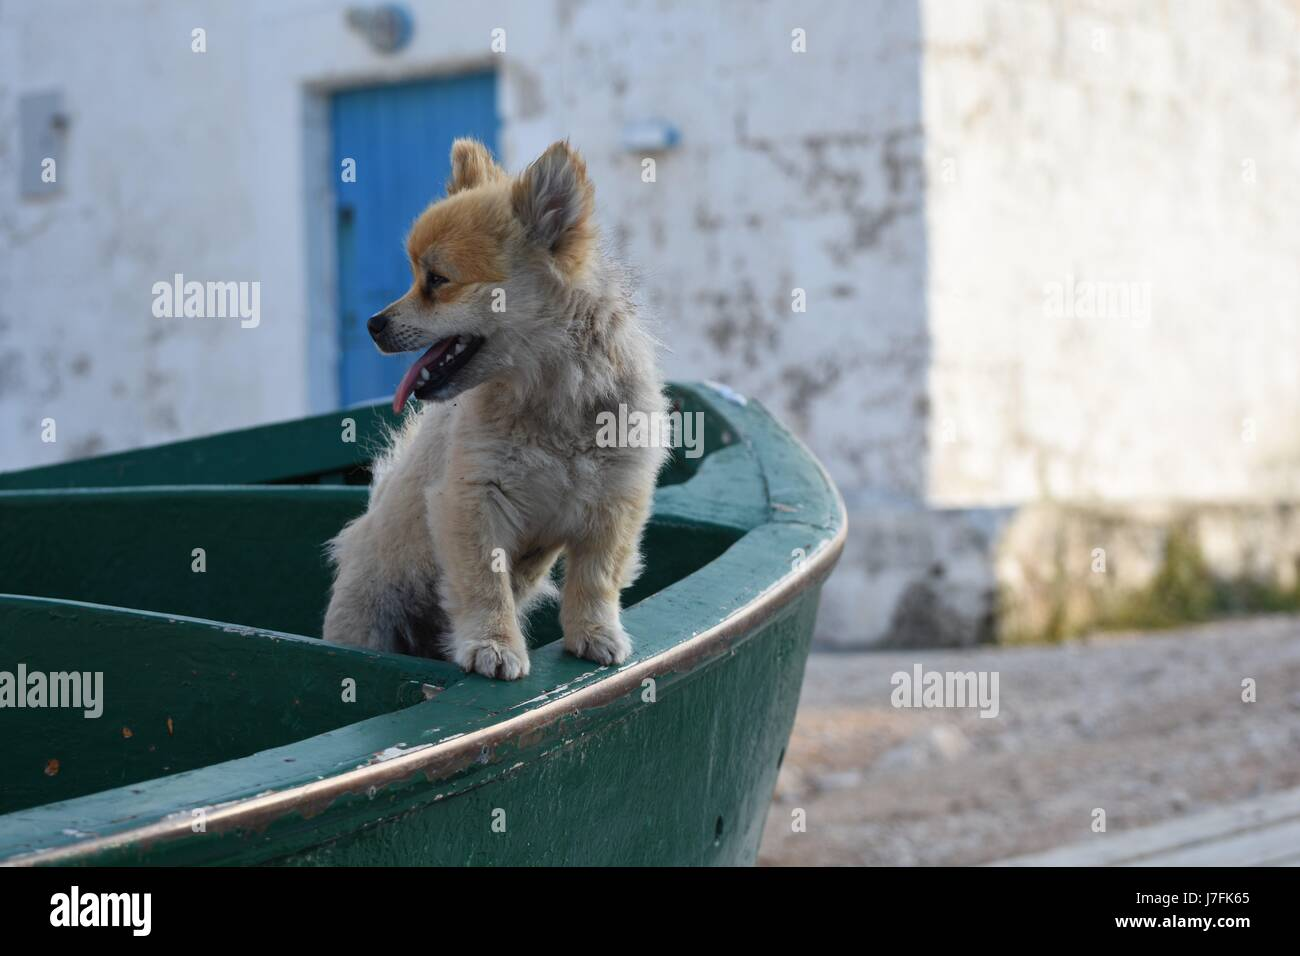 Cute dog standing on a fishermen boat - Stock Image